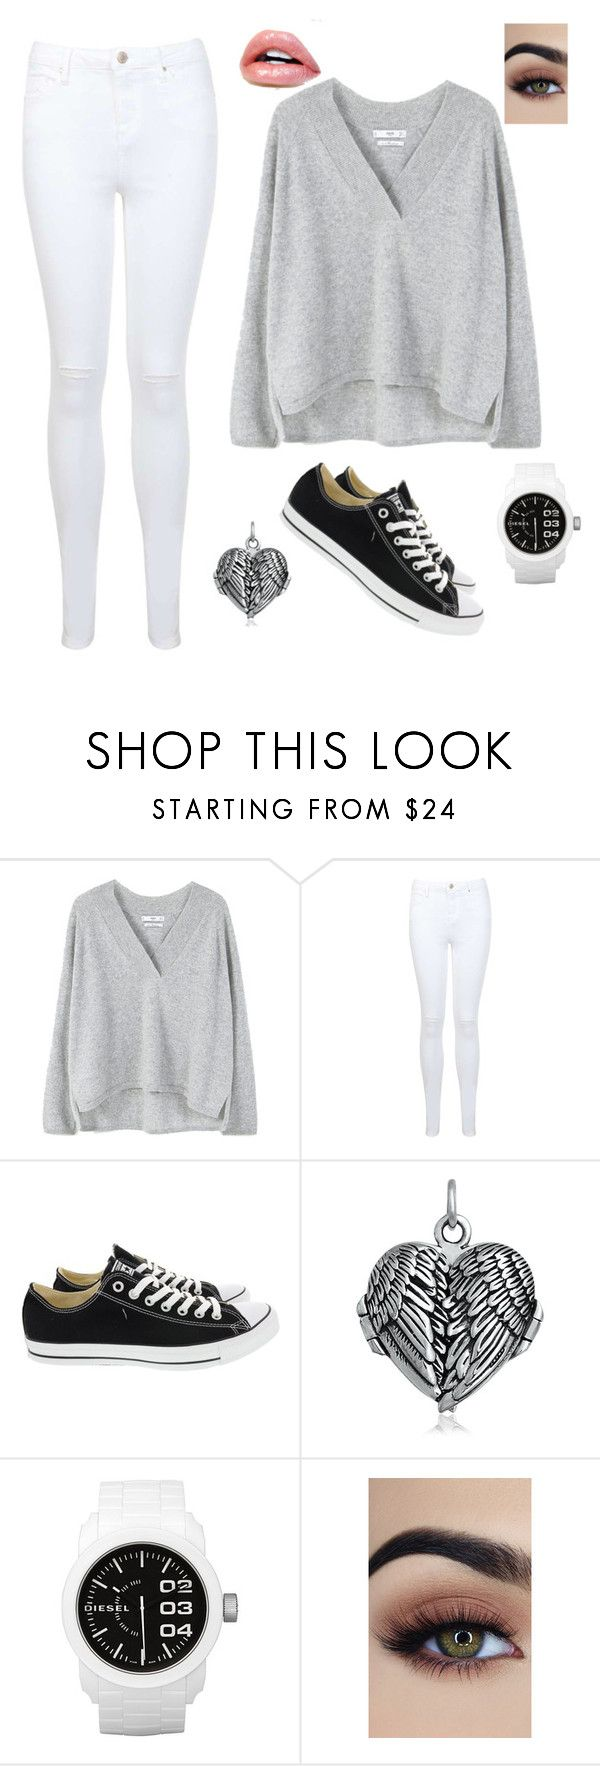 """Untitled #110"" by sr-for-the-world on Polyvore featuring MANGO, Miss Selfridge, Converse, Bling Jewelry and Diesel"